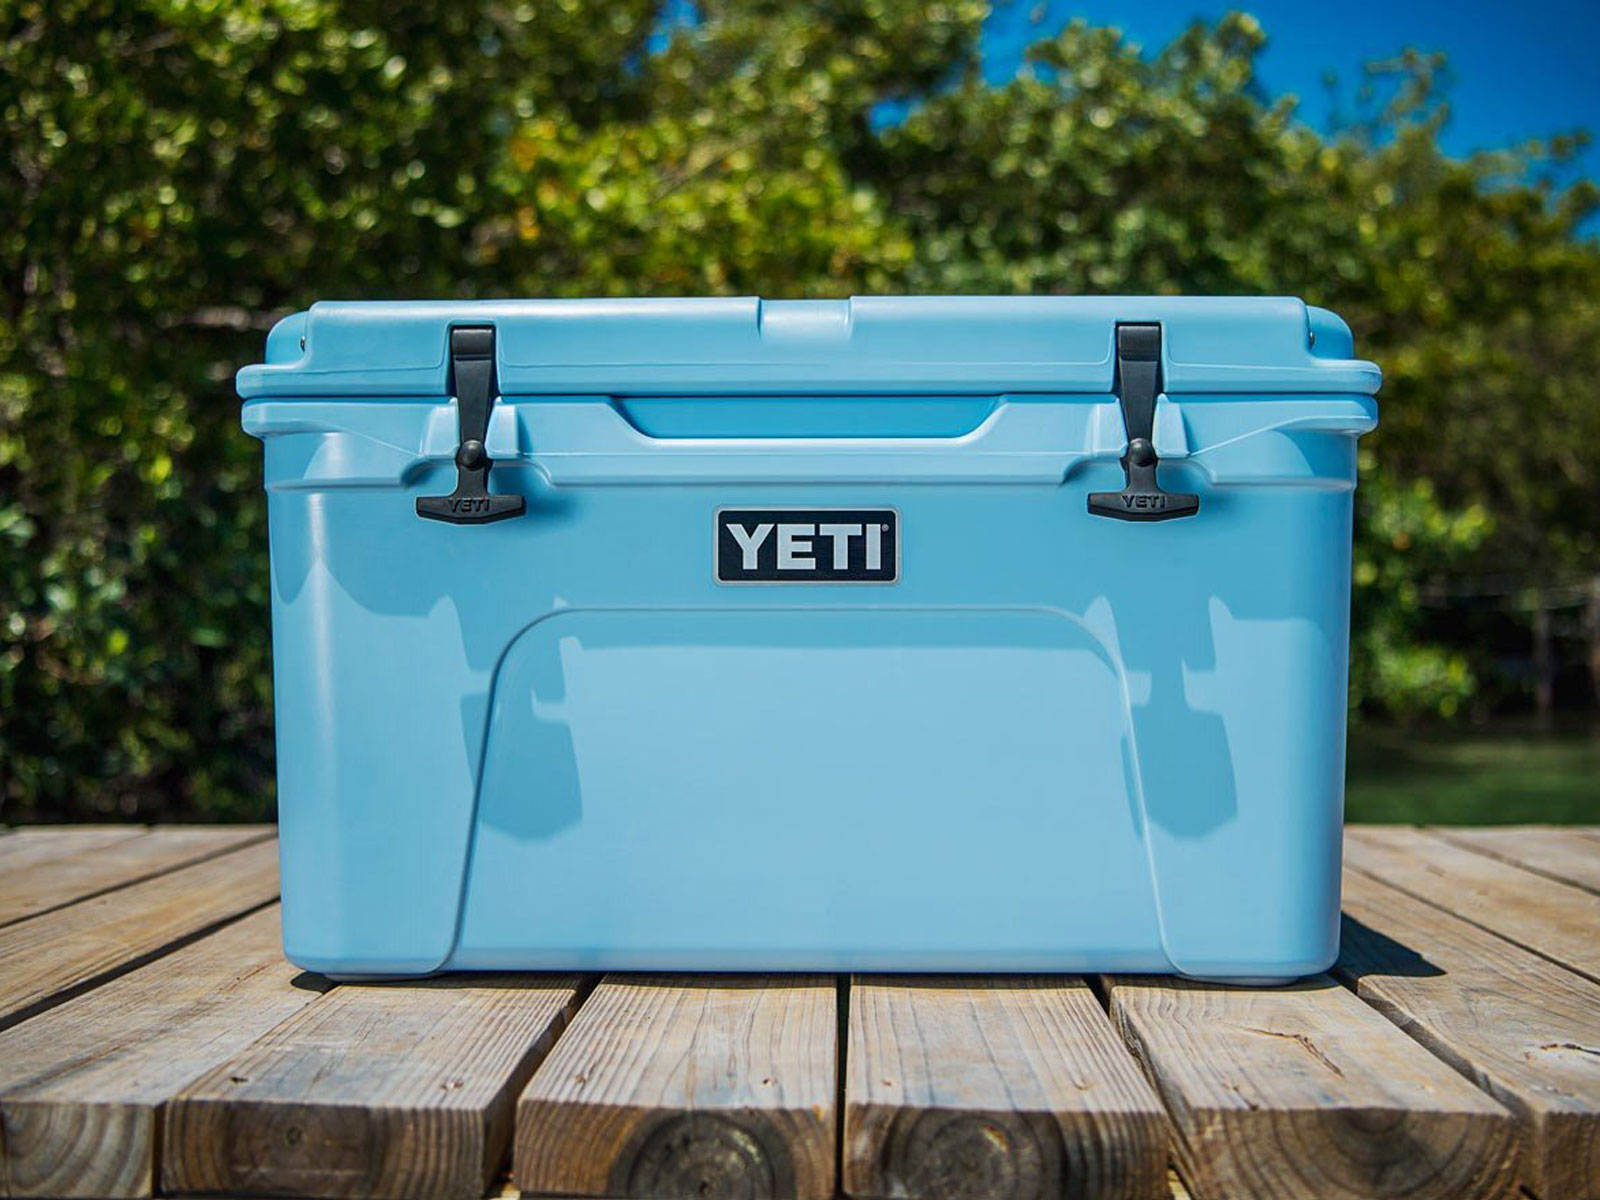 Our Favorite Yeti Cooler Is on Sale for Prime Day